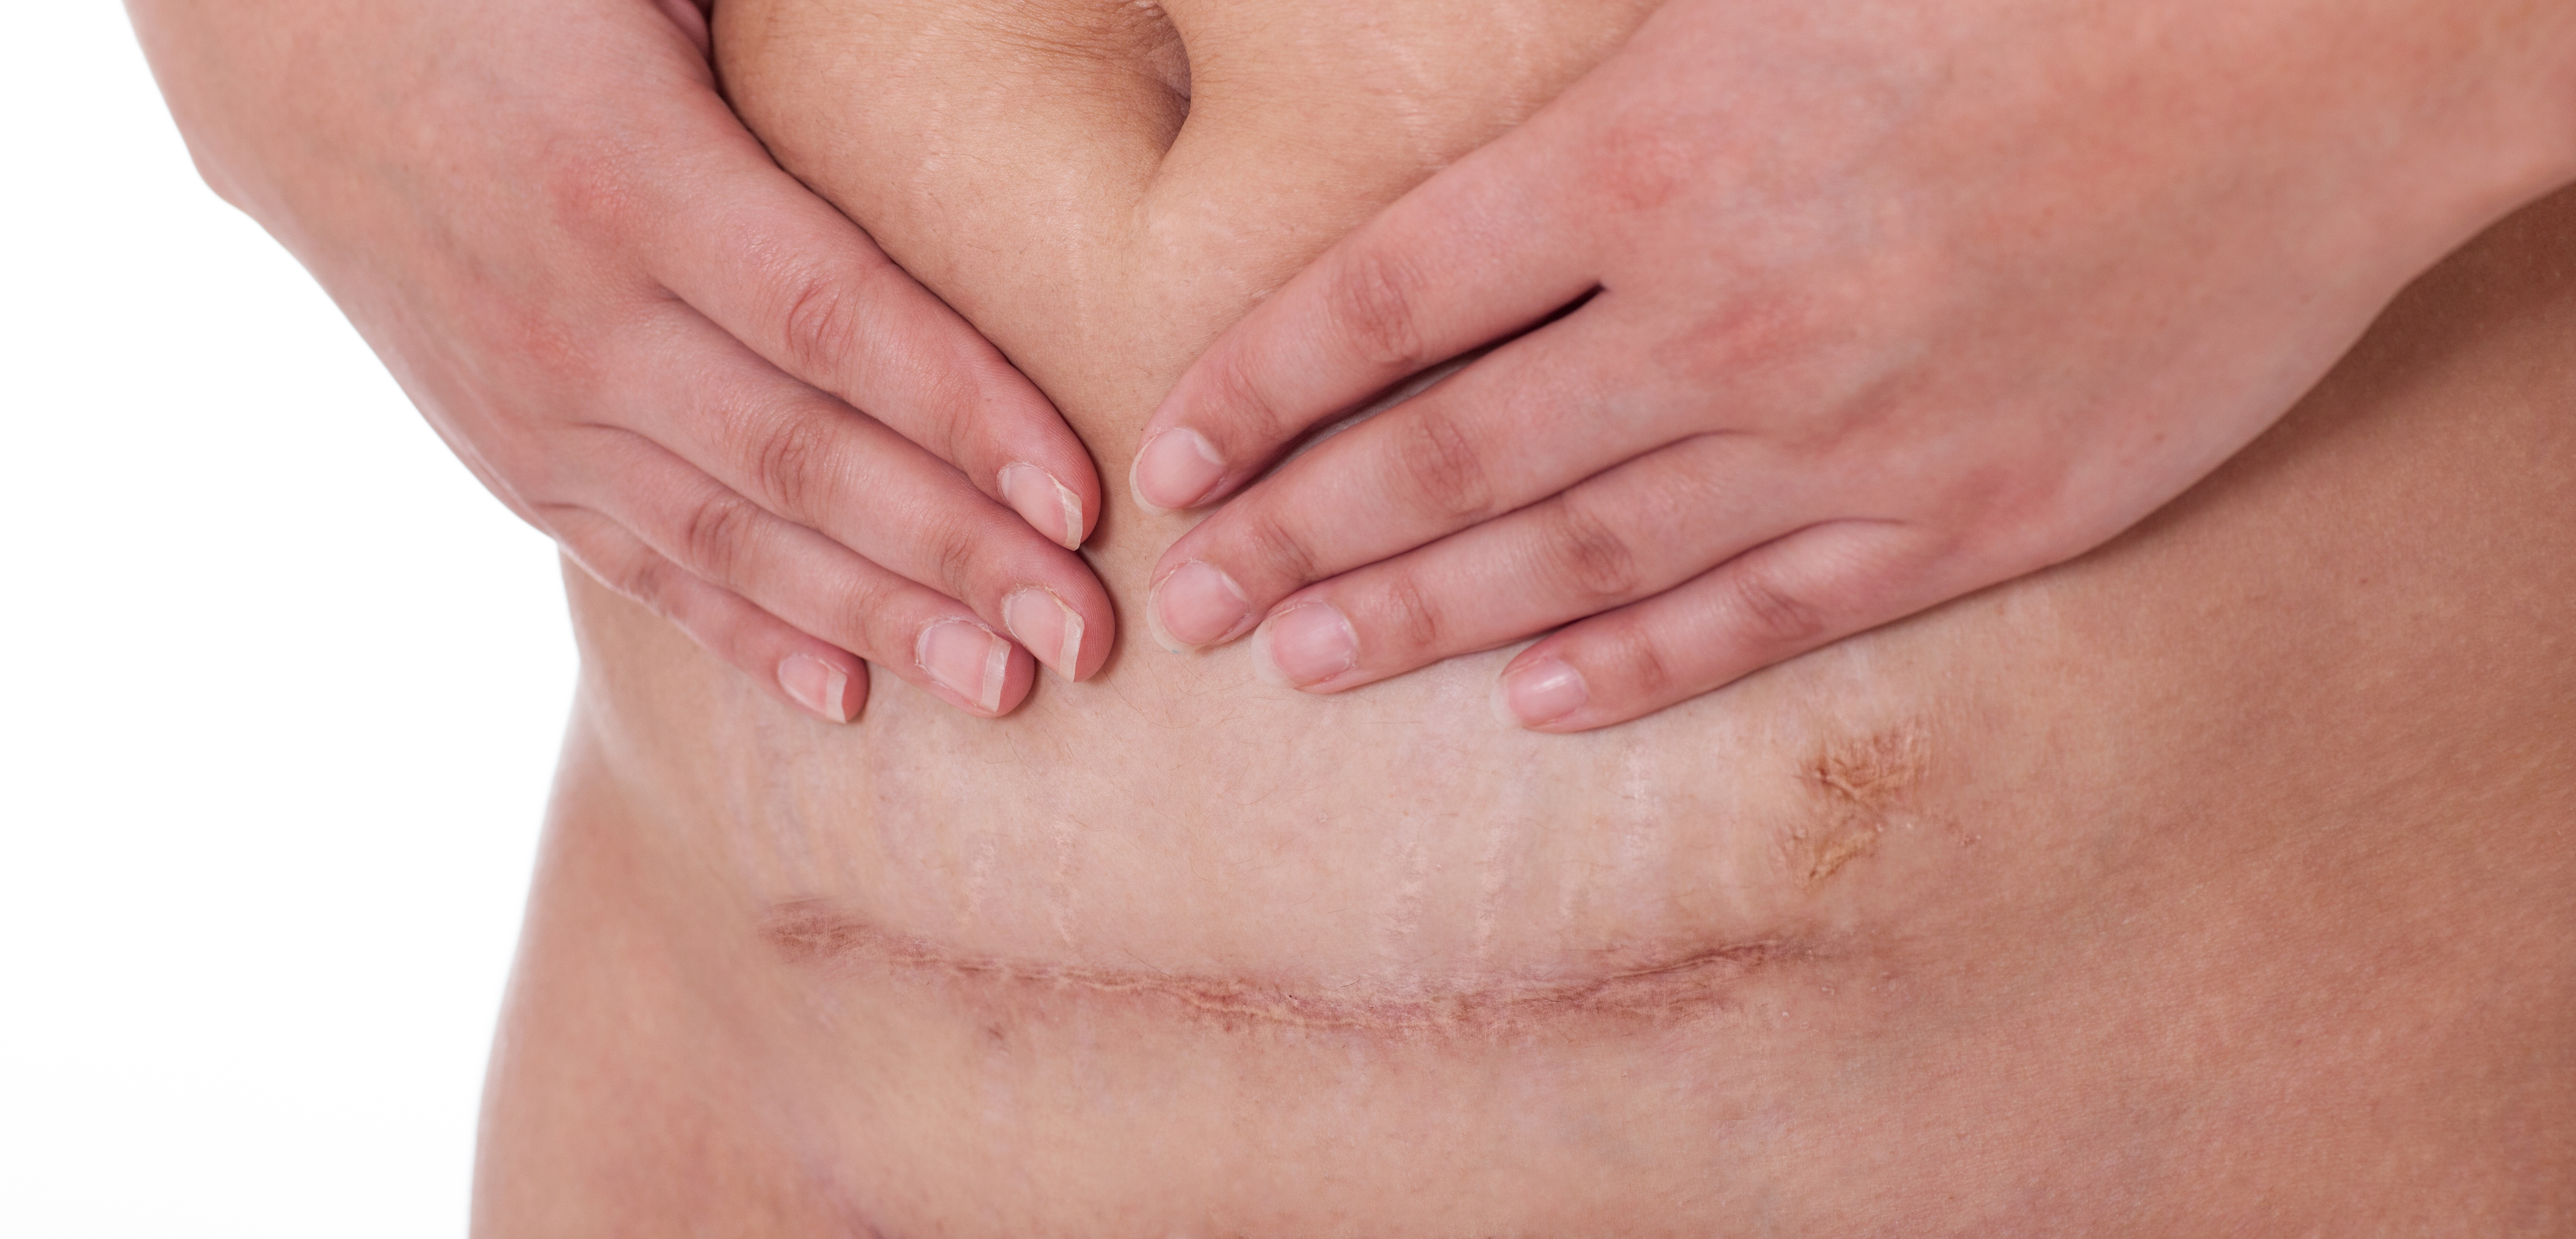 Sharp cramping pains in my c-section scar during pregnancy